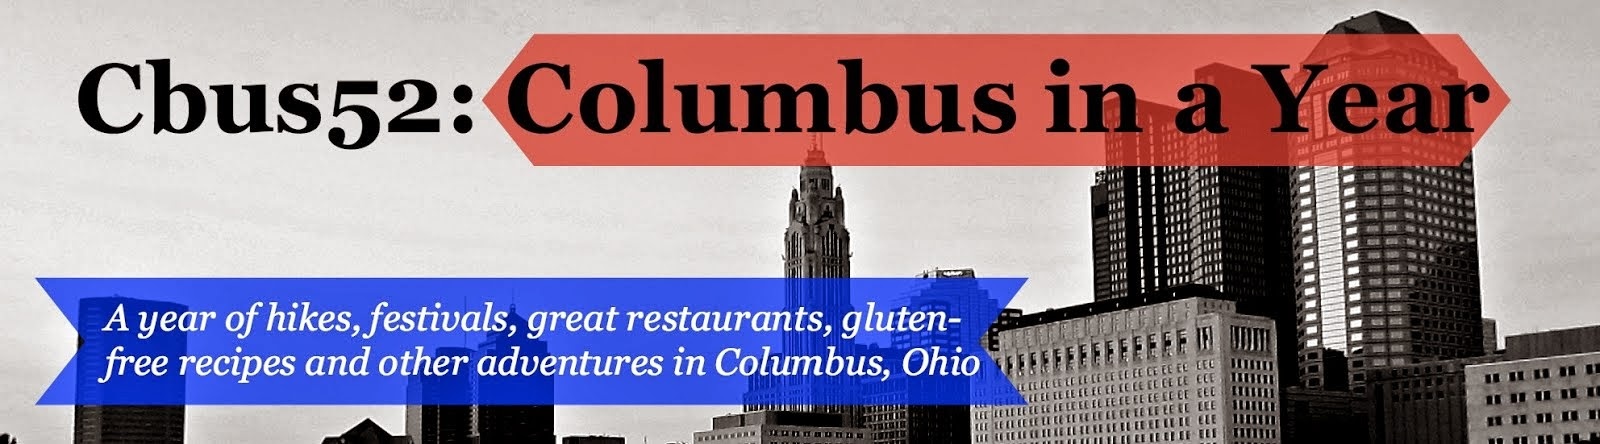 Cbus52: Columbus in a Year